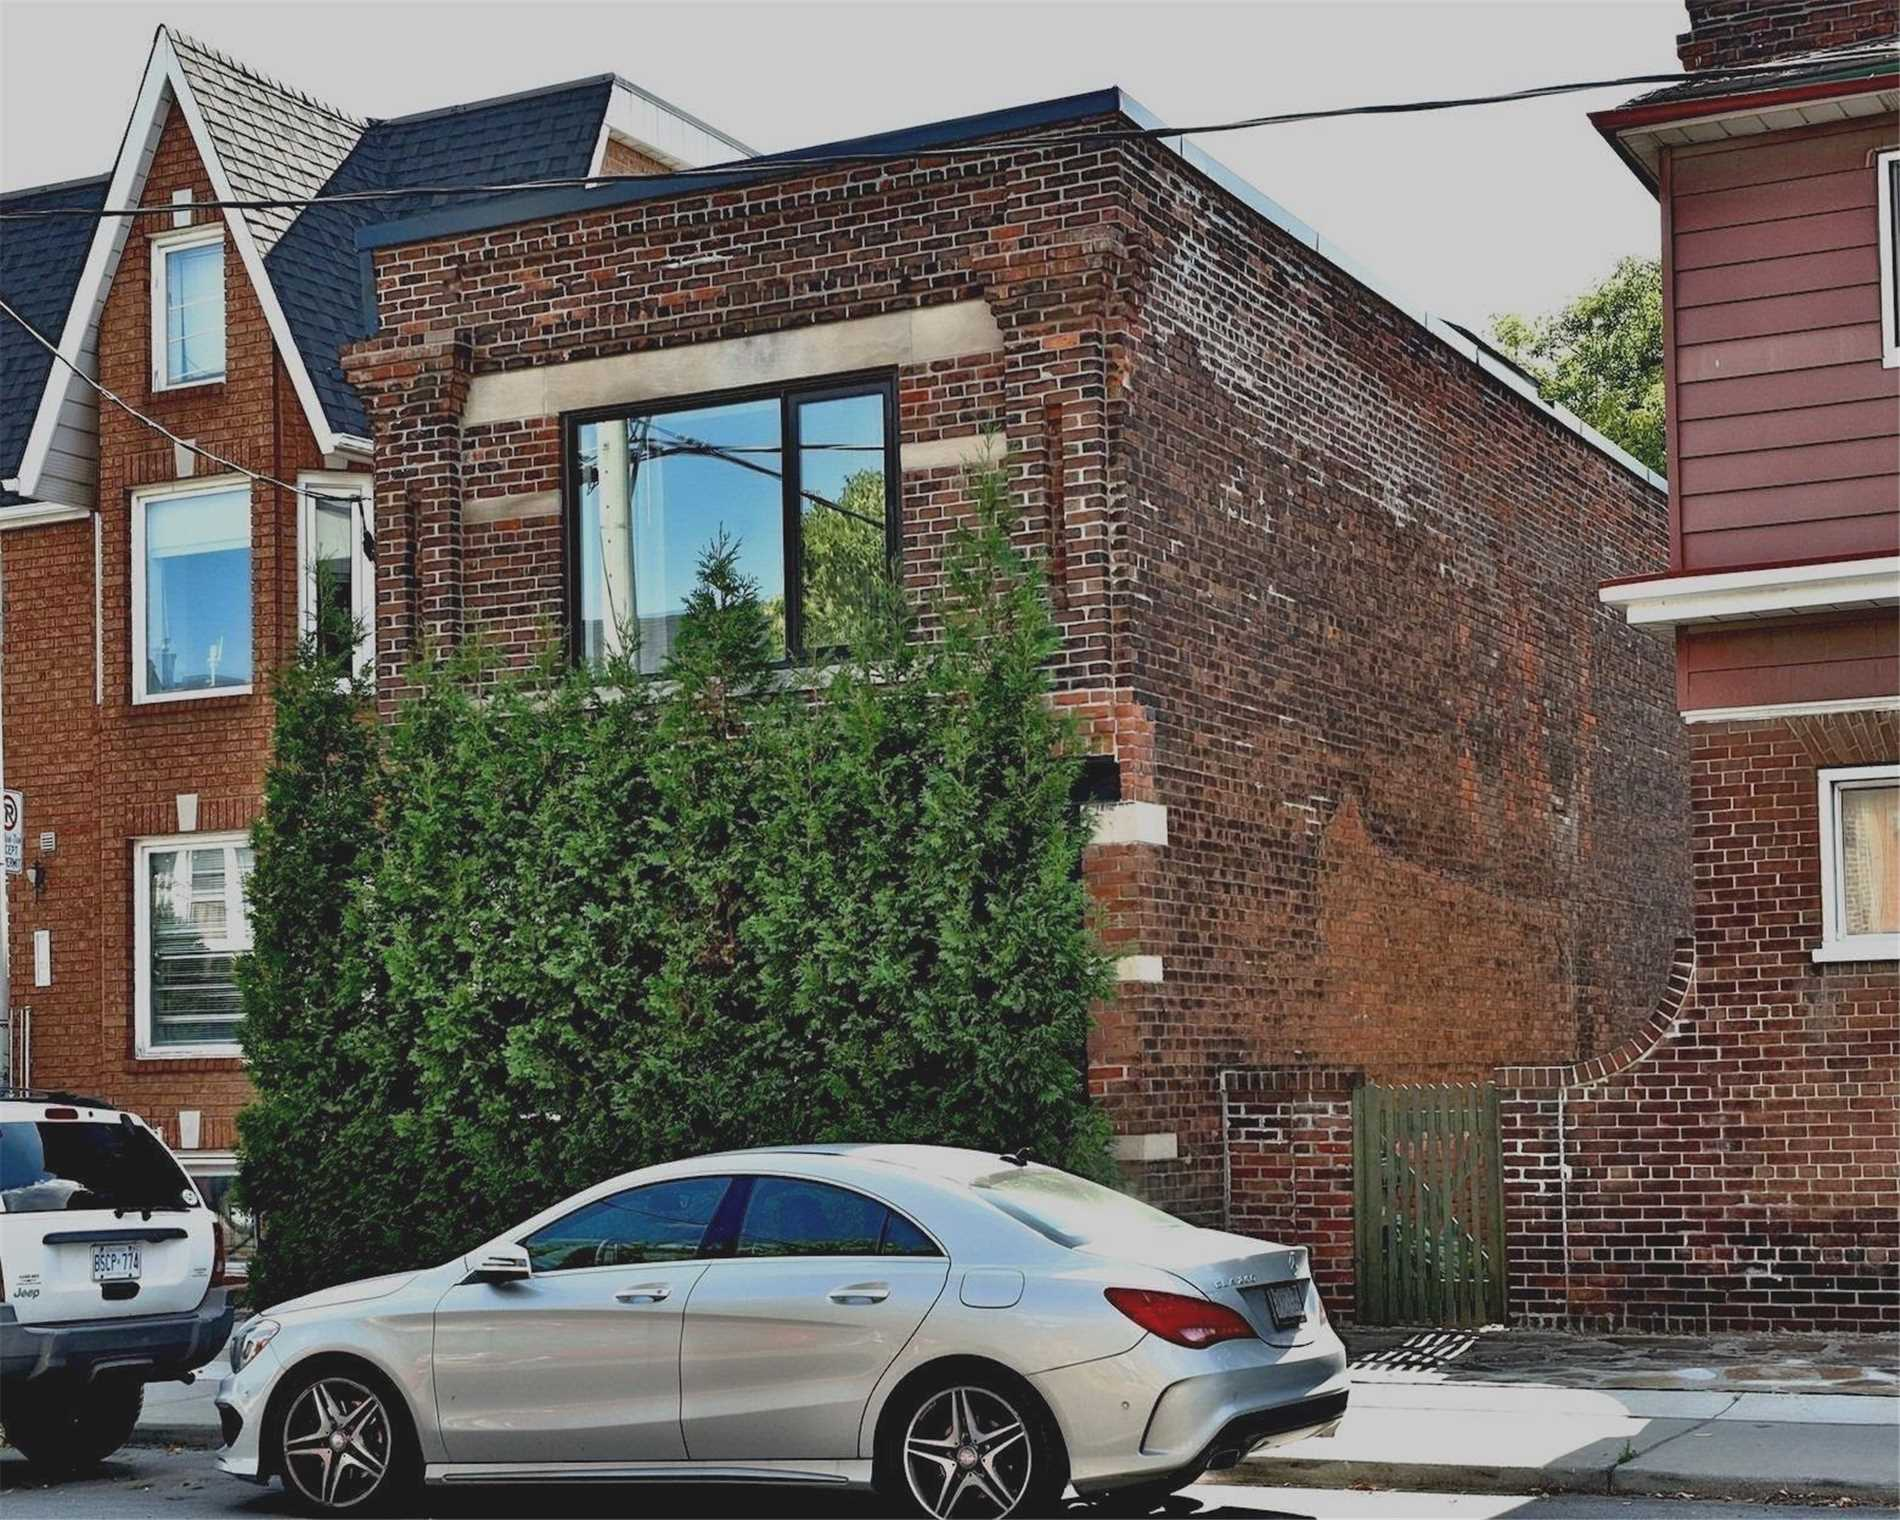 For Sale: 832 Dovercourt Road, Toronto, ON | 2 Bed, 2 Bath House for $1799000.00. See 20 photos!